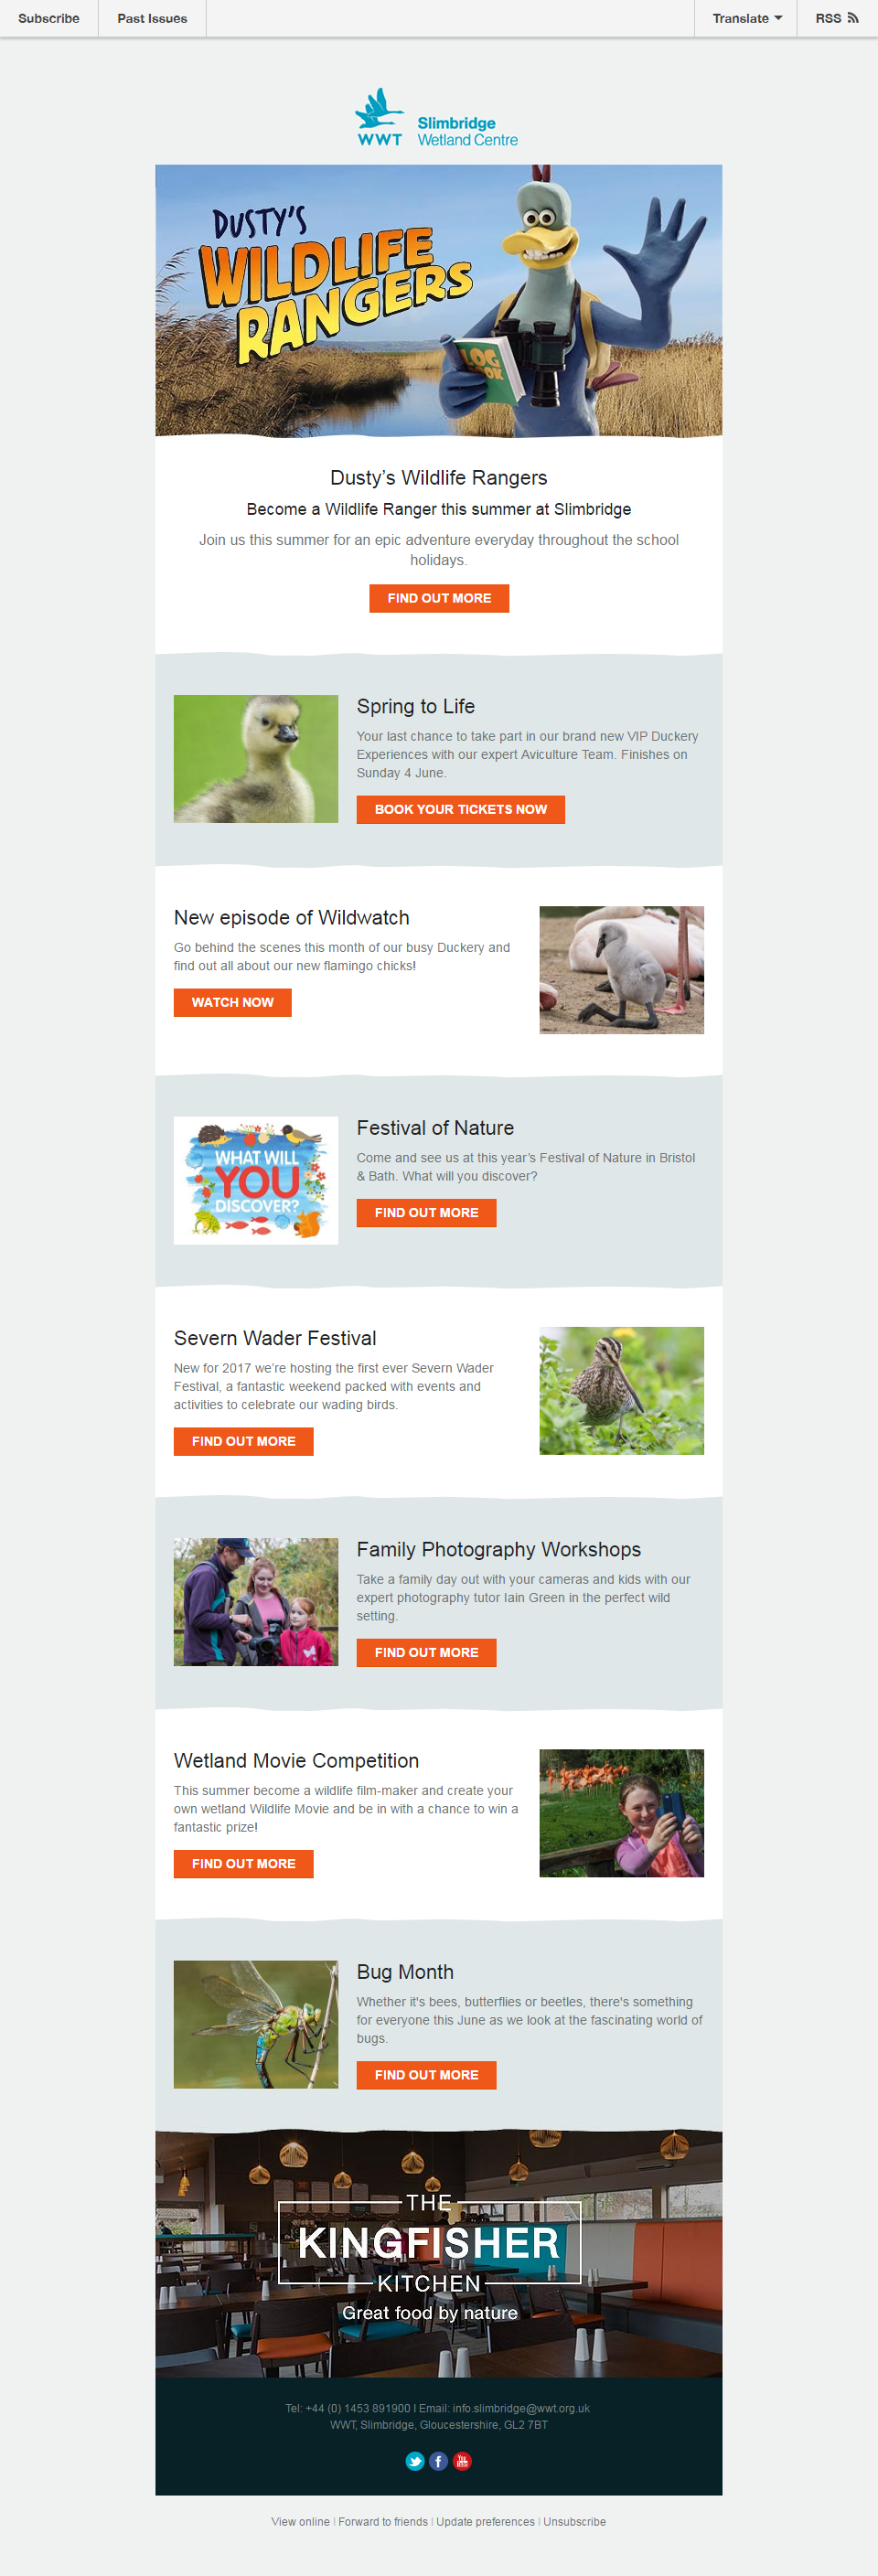 Charity Emails - WWT Slimbridge